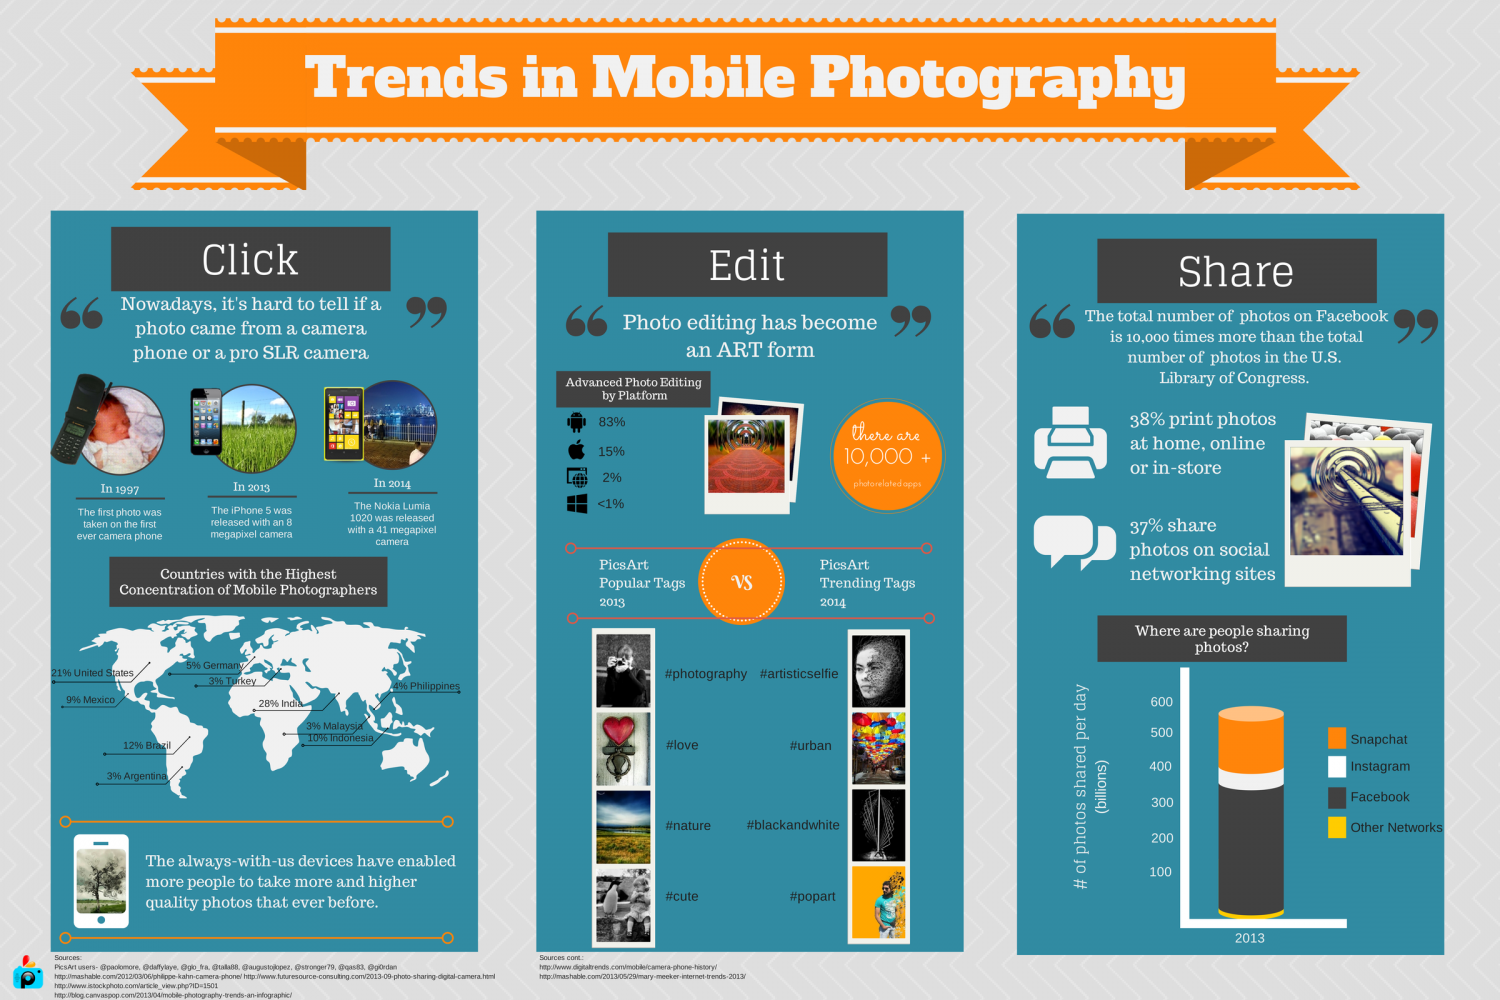 Trends in Mobile Photography Infographic